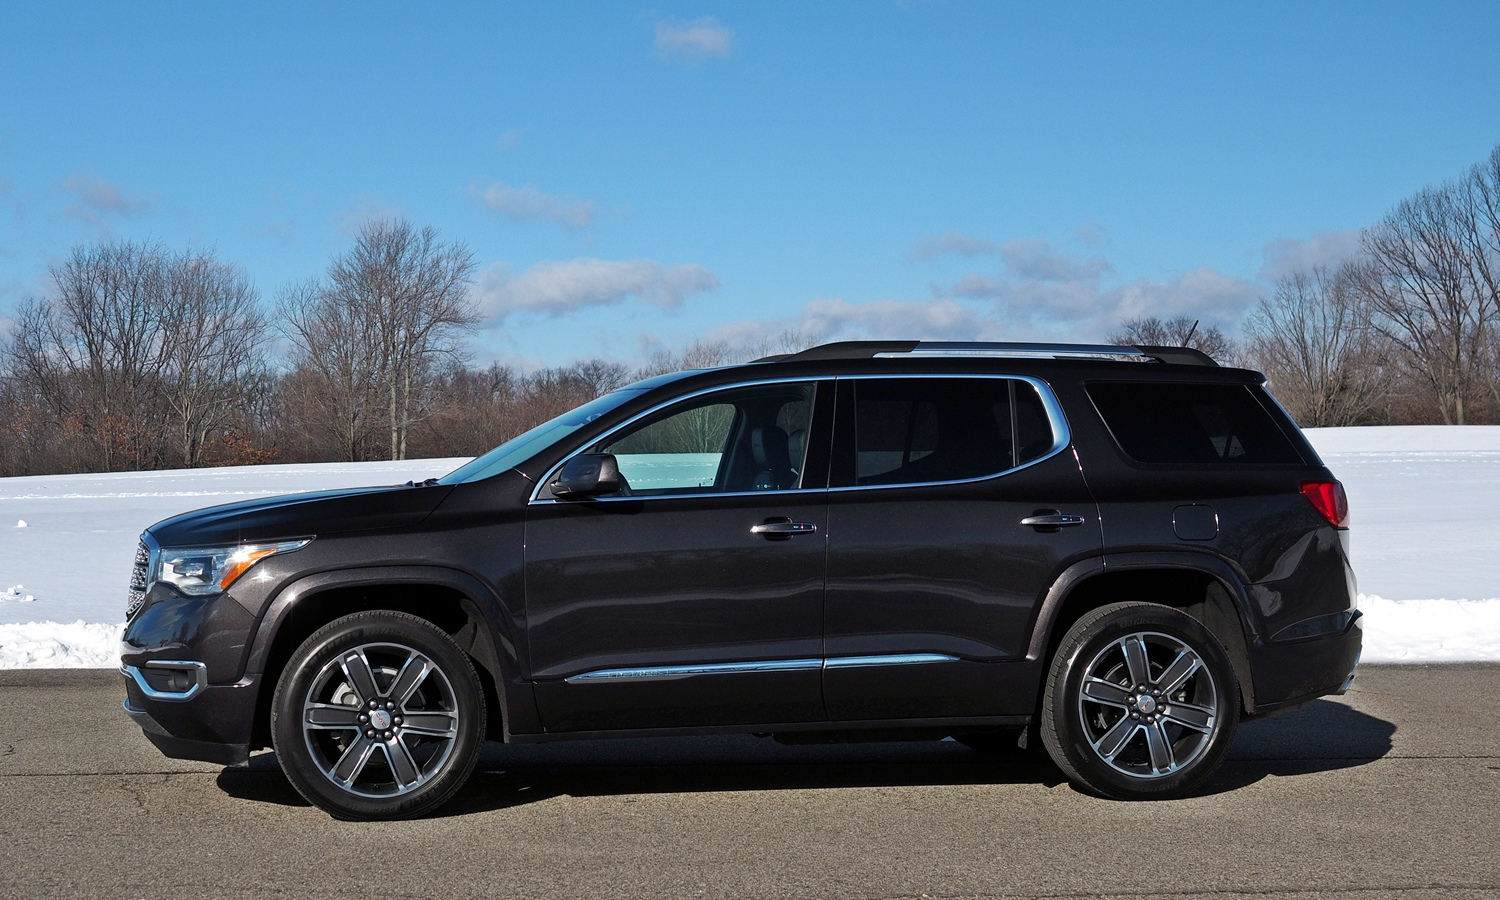 2017 gmc acadia photos truedelta car reviews. Black Bedroom Furniture Sets. Home Design Ideas